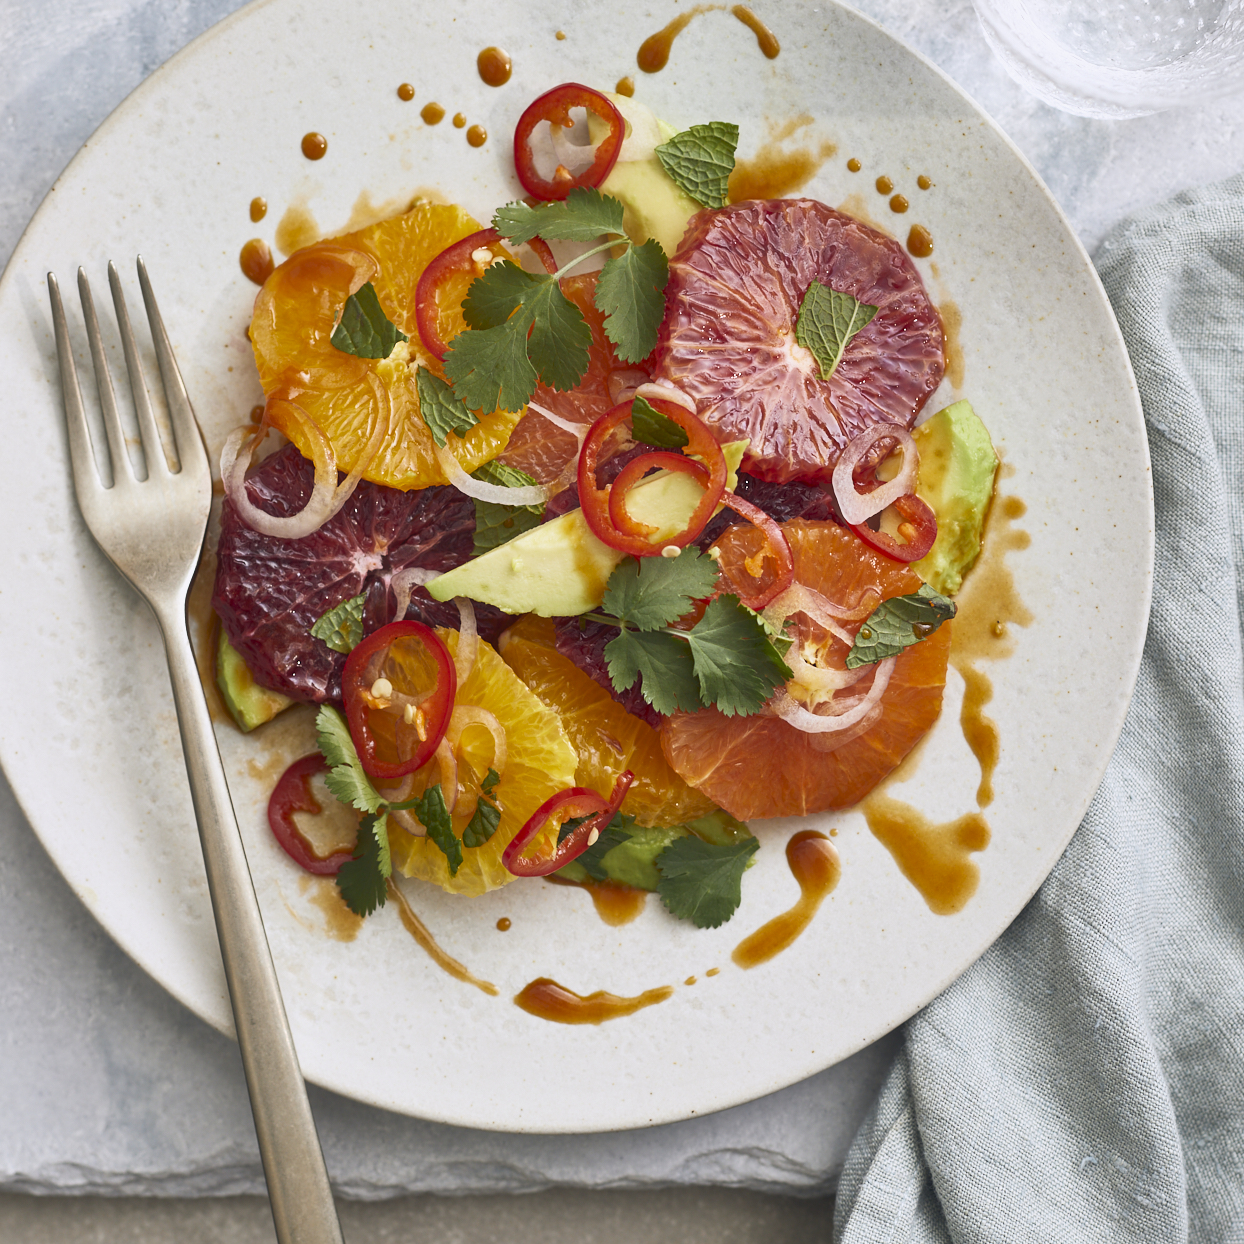 This gorgeous salad, packed with vitamin C, will help keep you and your friends healthy during the winter months. Hot chili oil brings the heat in the dressing, while toasted sesame oil adds a nutty note. Creamy avocado and cooling mint balance out the flavors.Source: EatingWell.com, March 2020